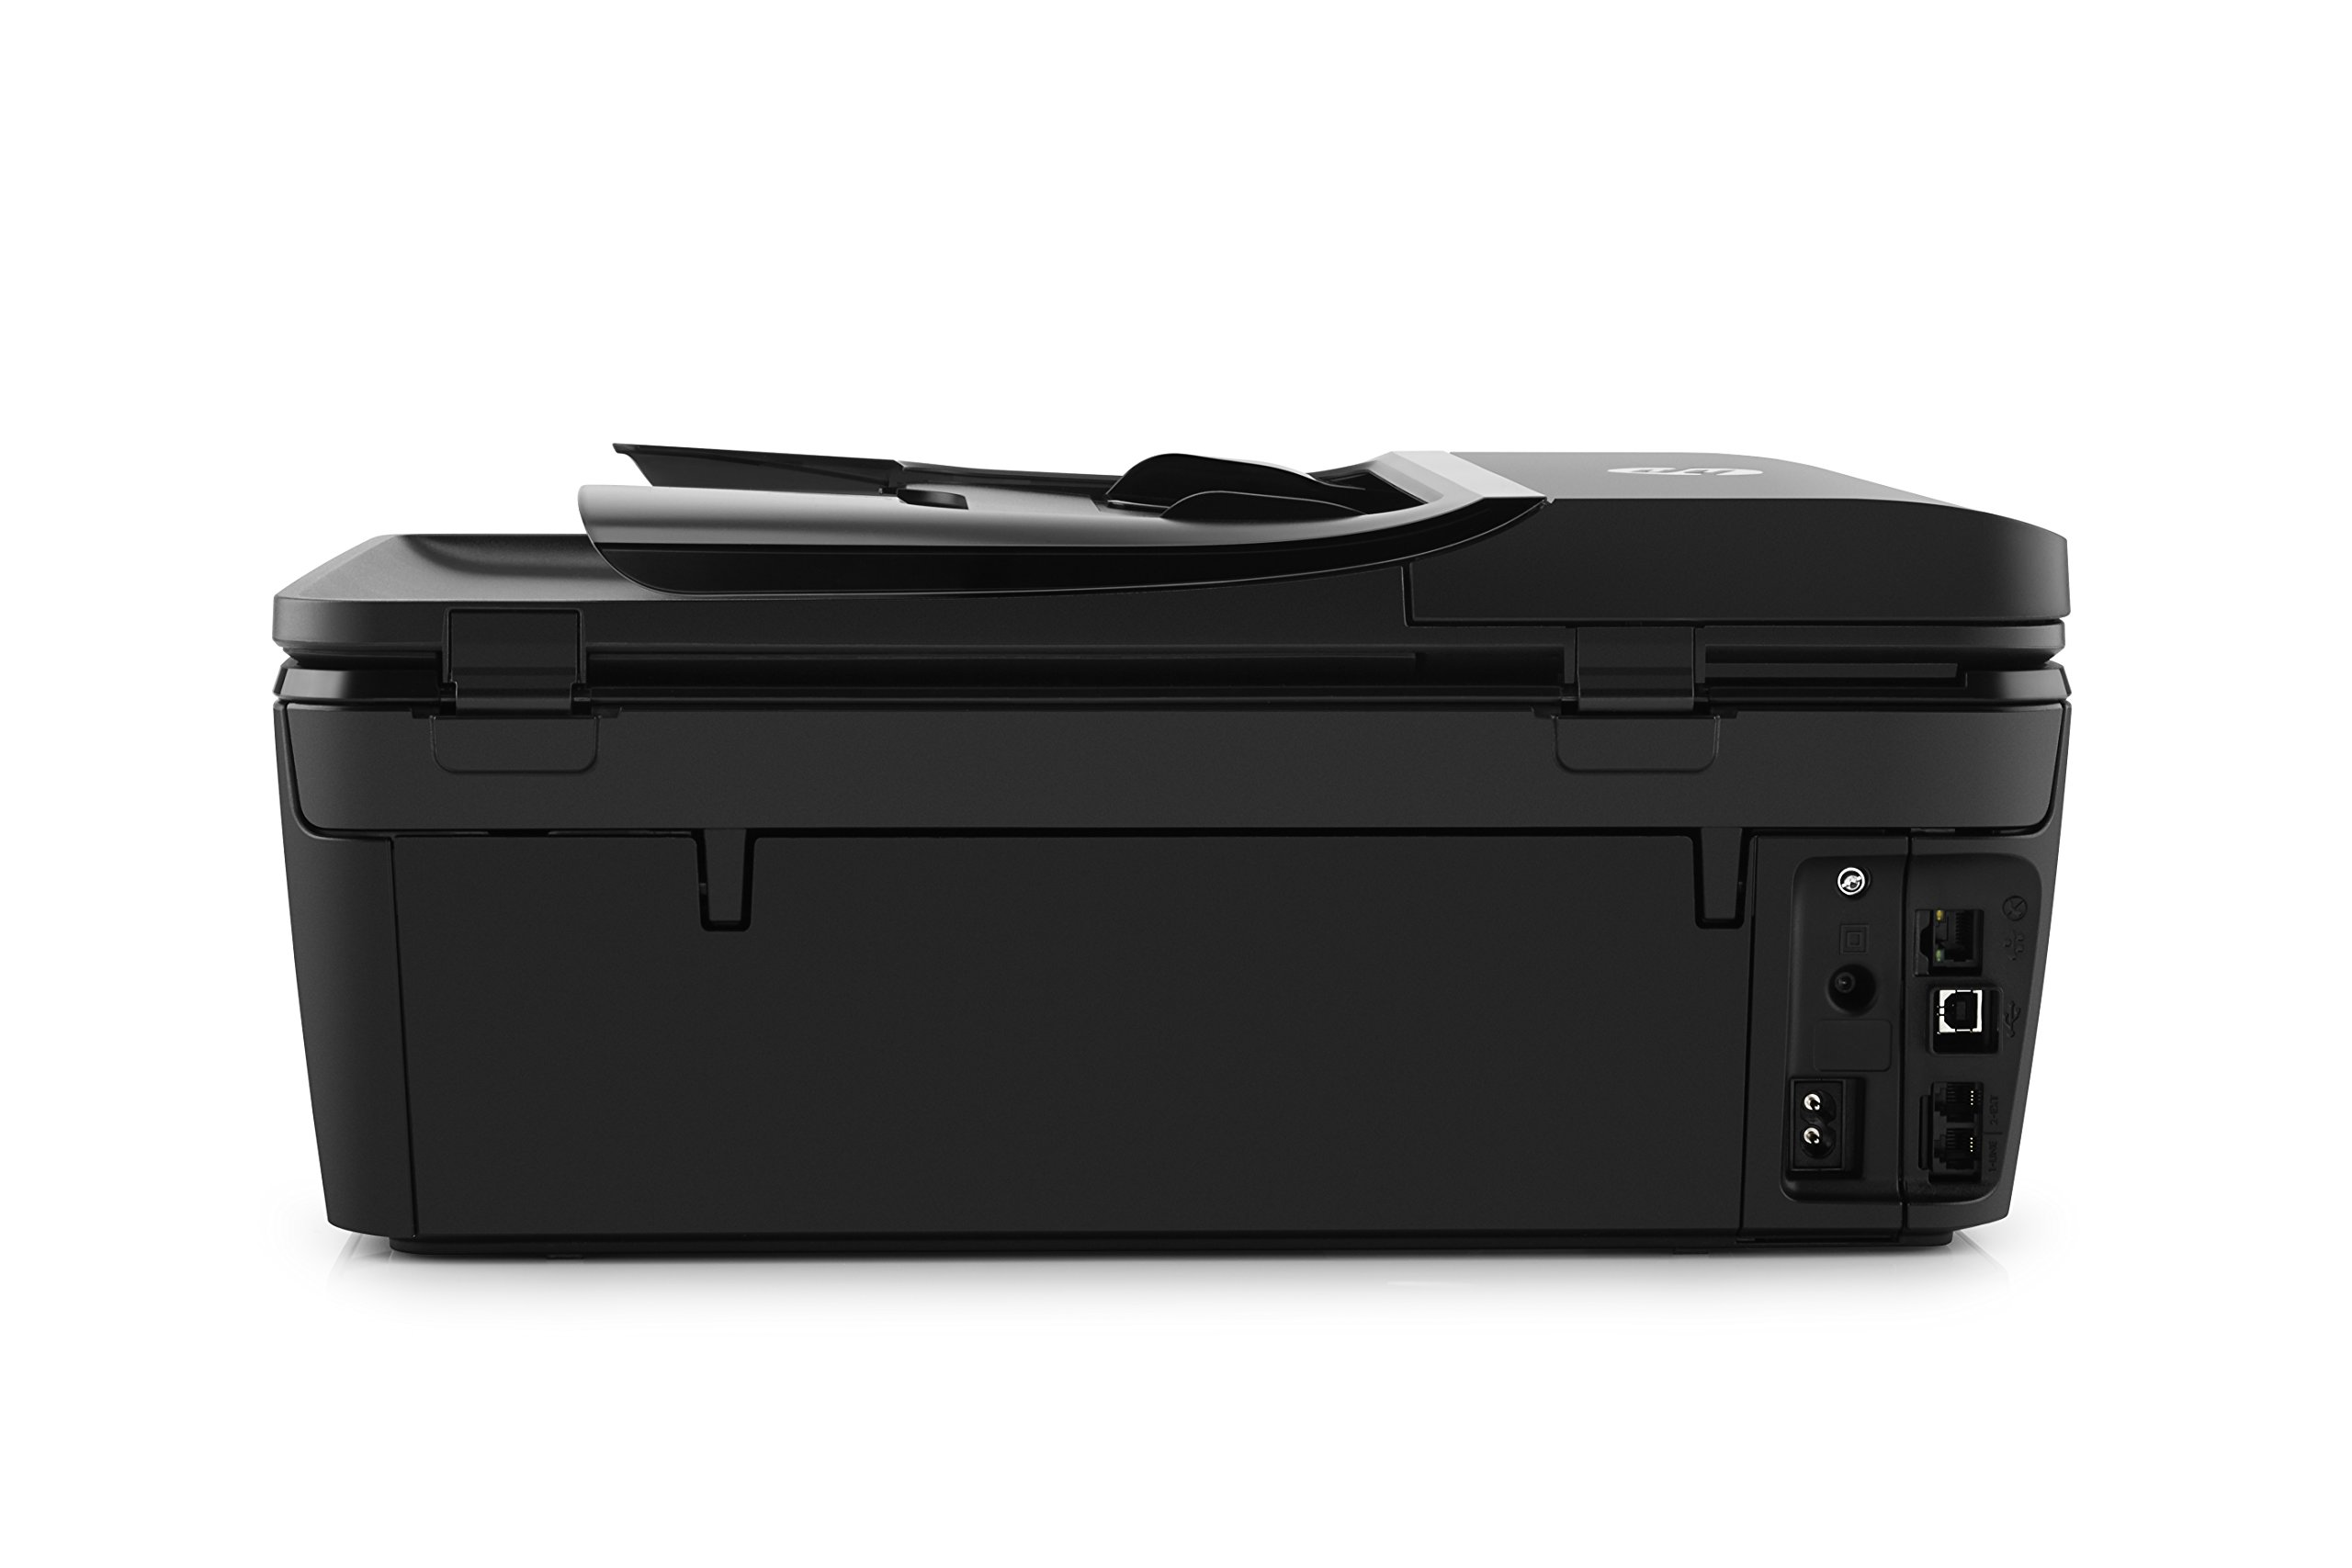 HP Envy 7640 Wireless All-in-One Photo Printer with Mobile Printing, Instant Ink ready (E4W43A) by HP (Image #6)